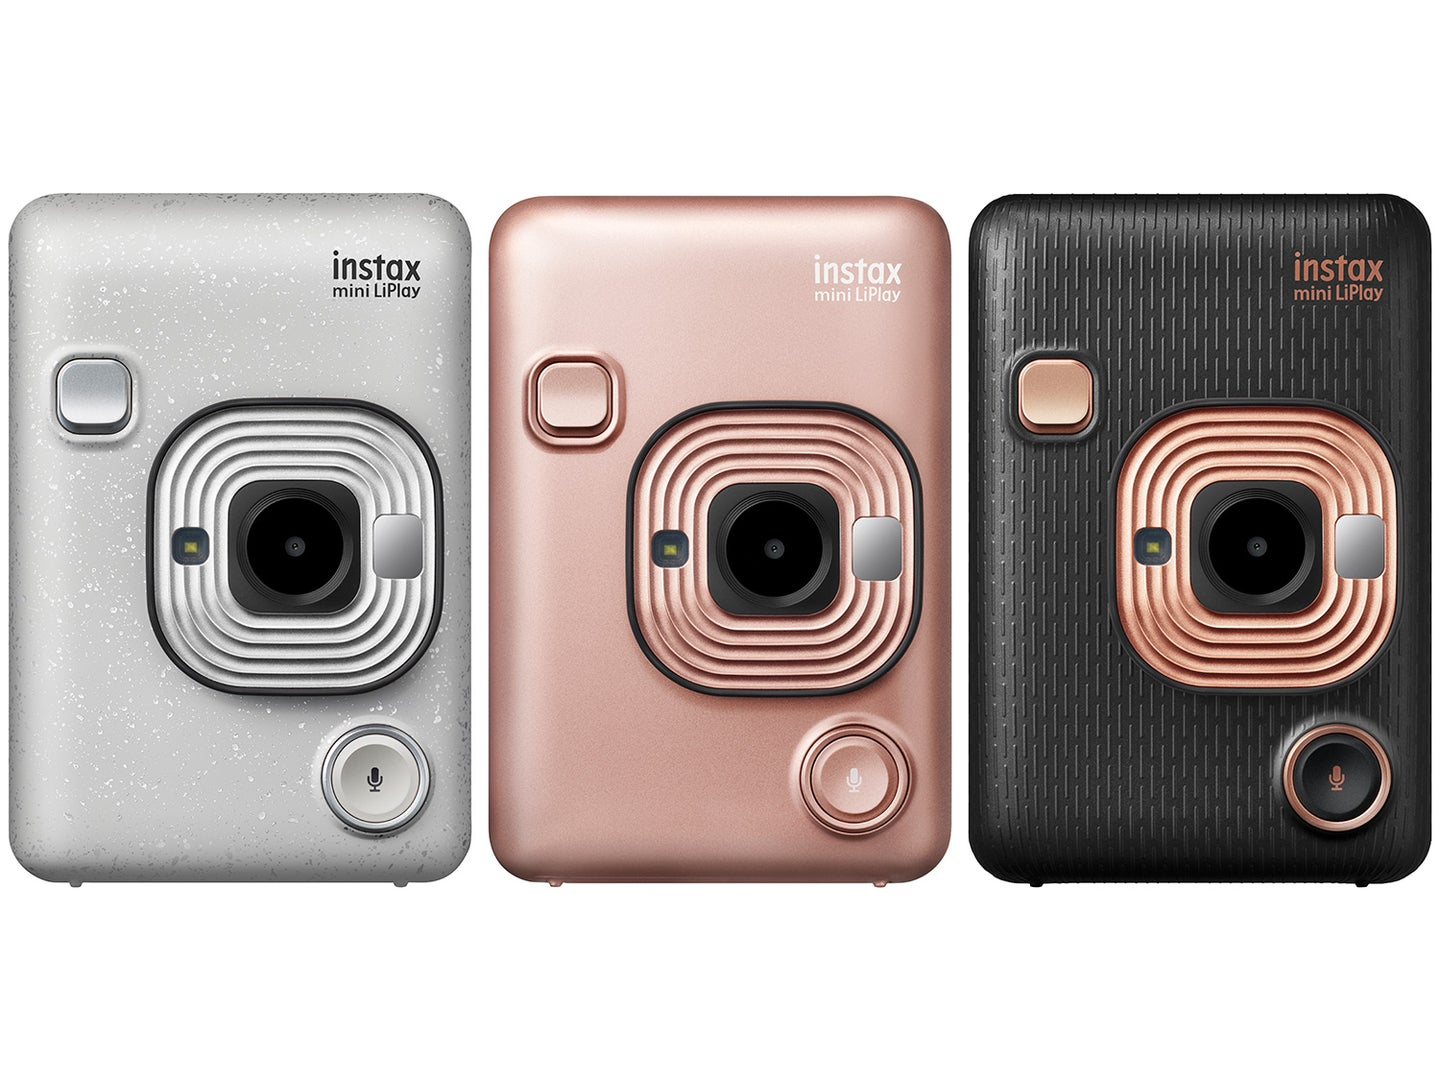 The Fujifilm Instax Mini LiPlay is an instant film camera that records sound